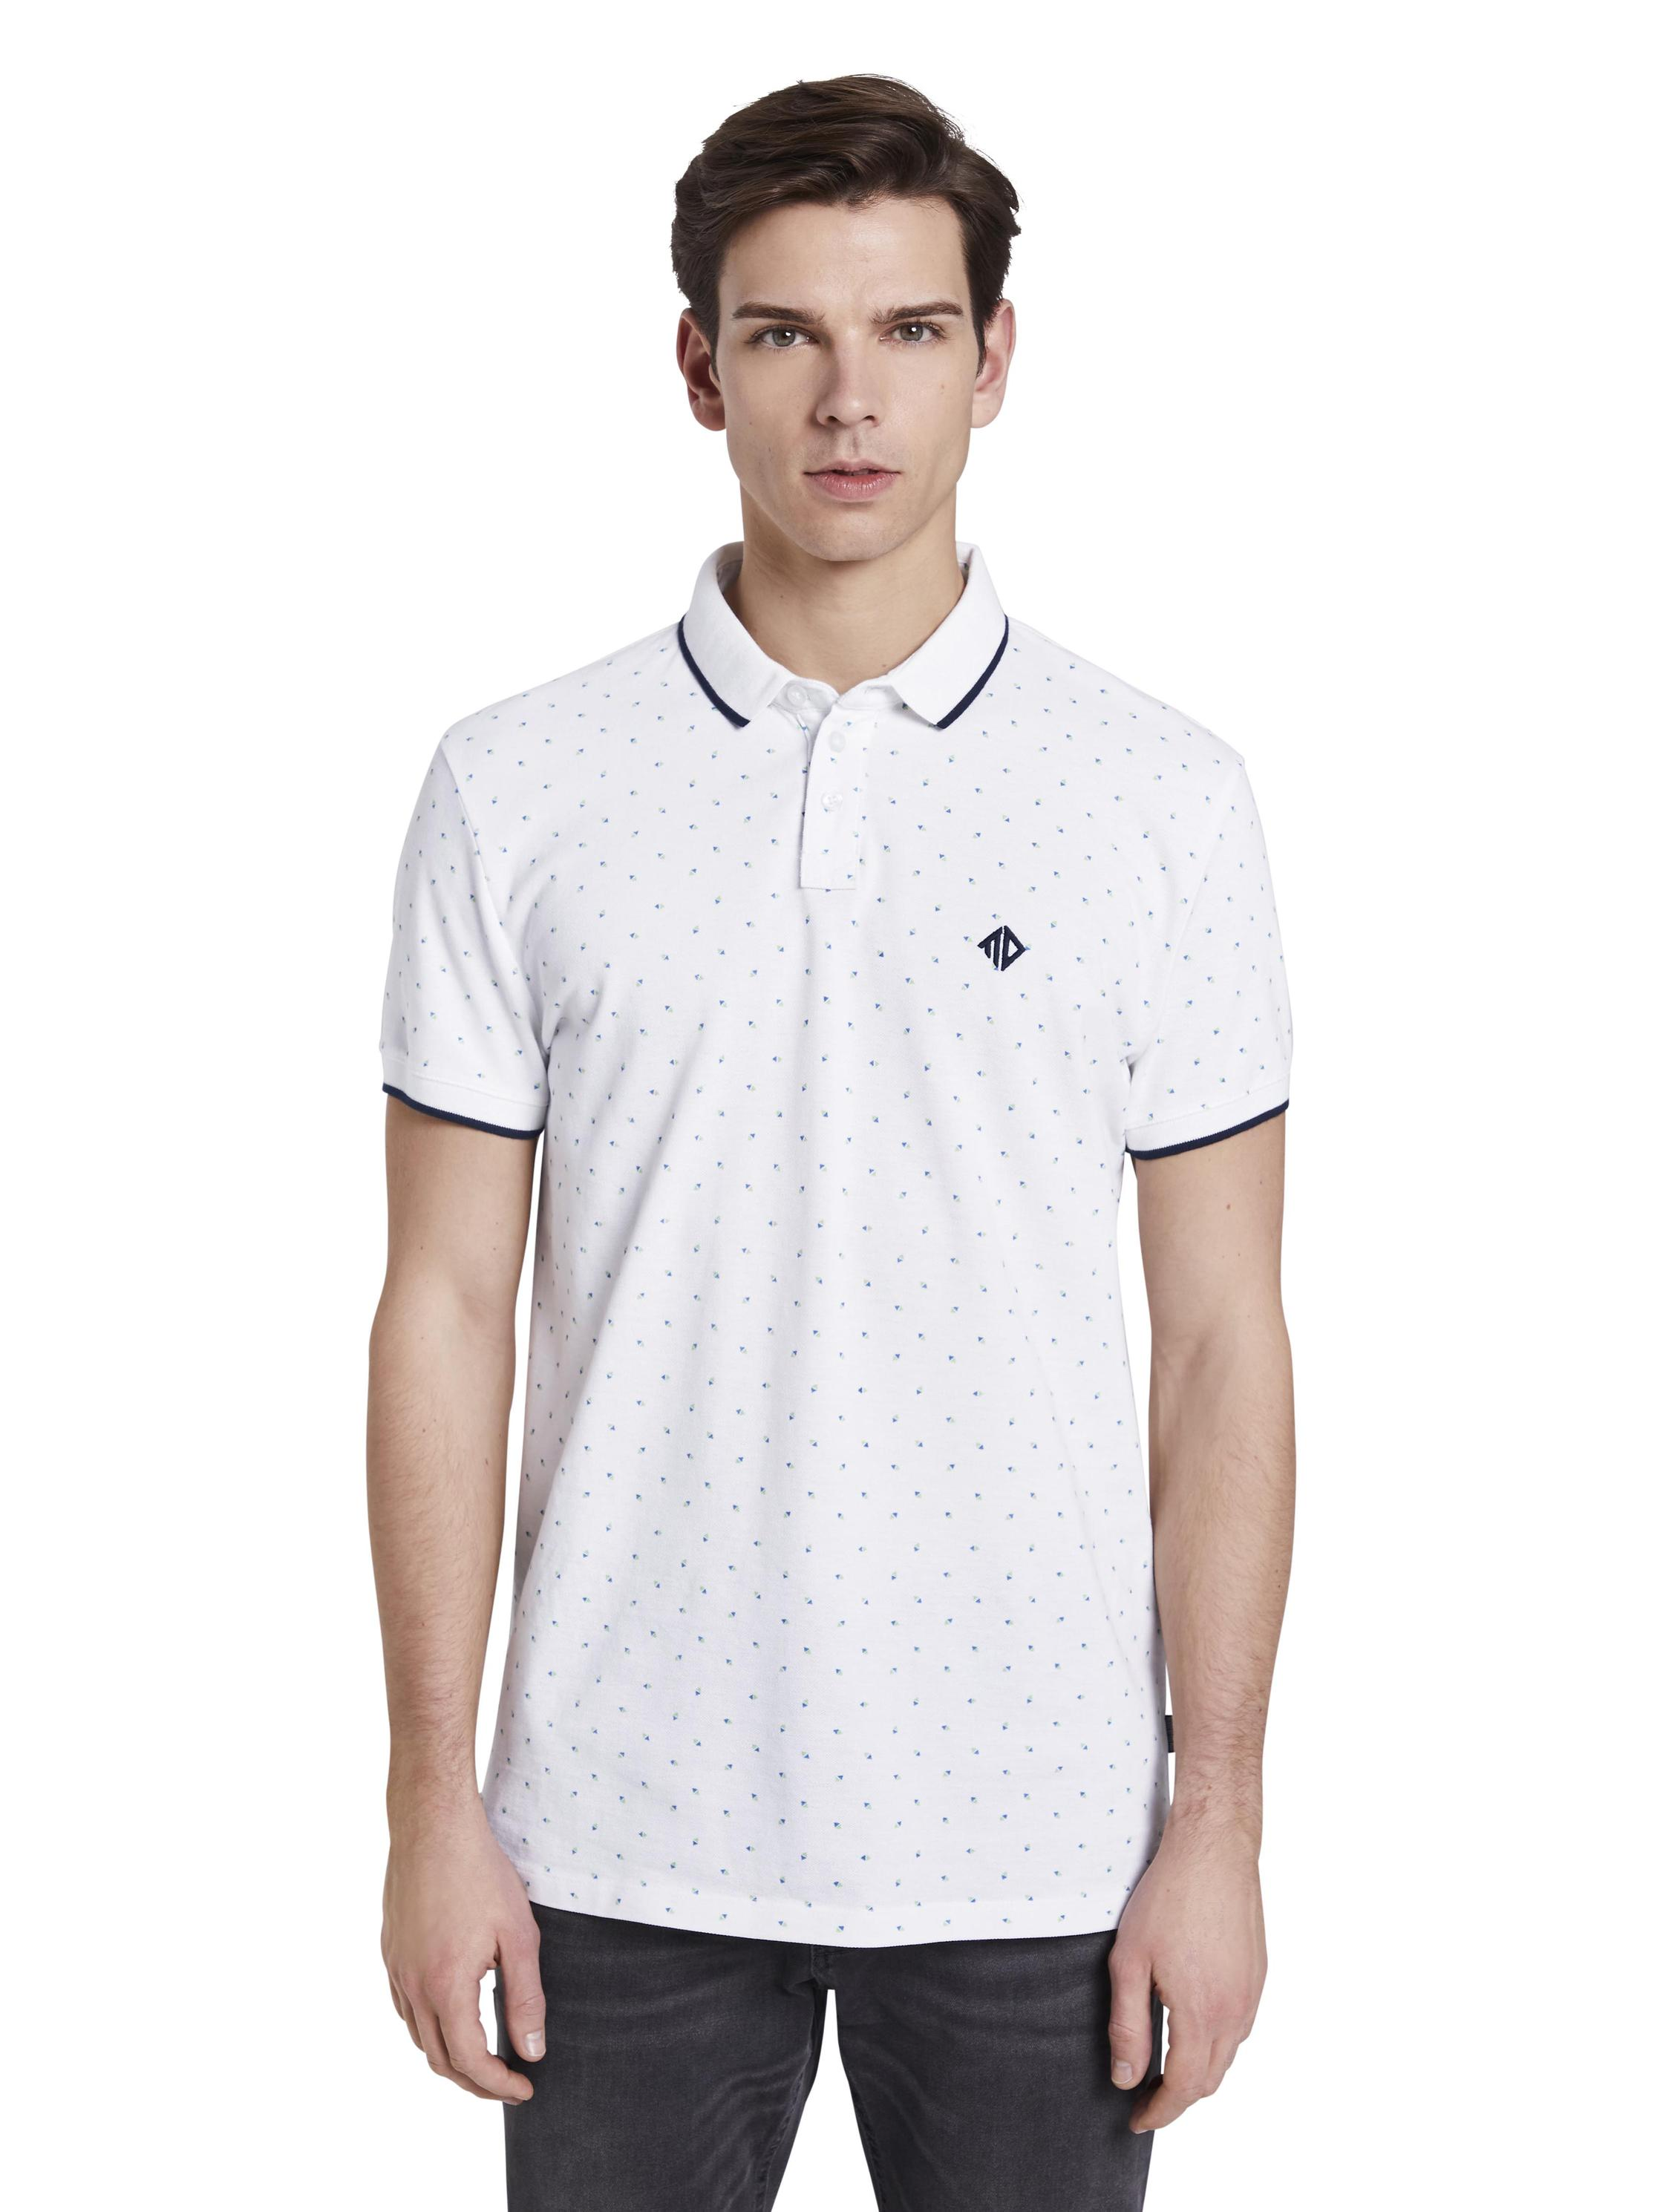 polo with all over print, white blue mint triangle print